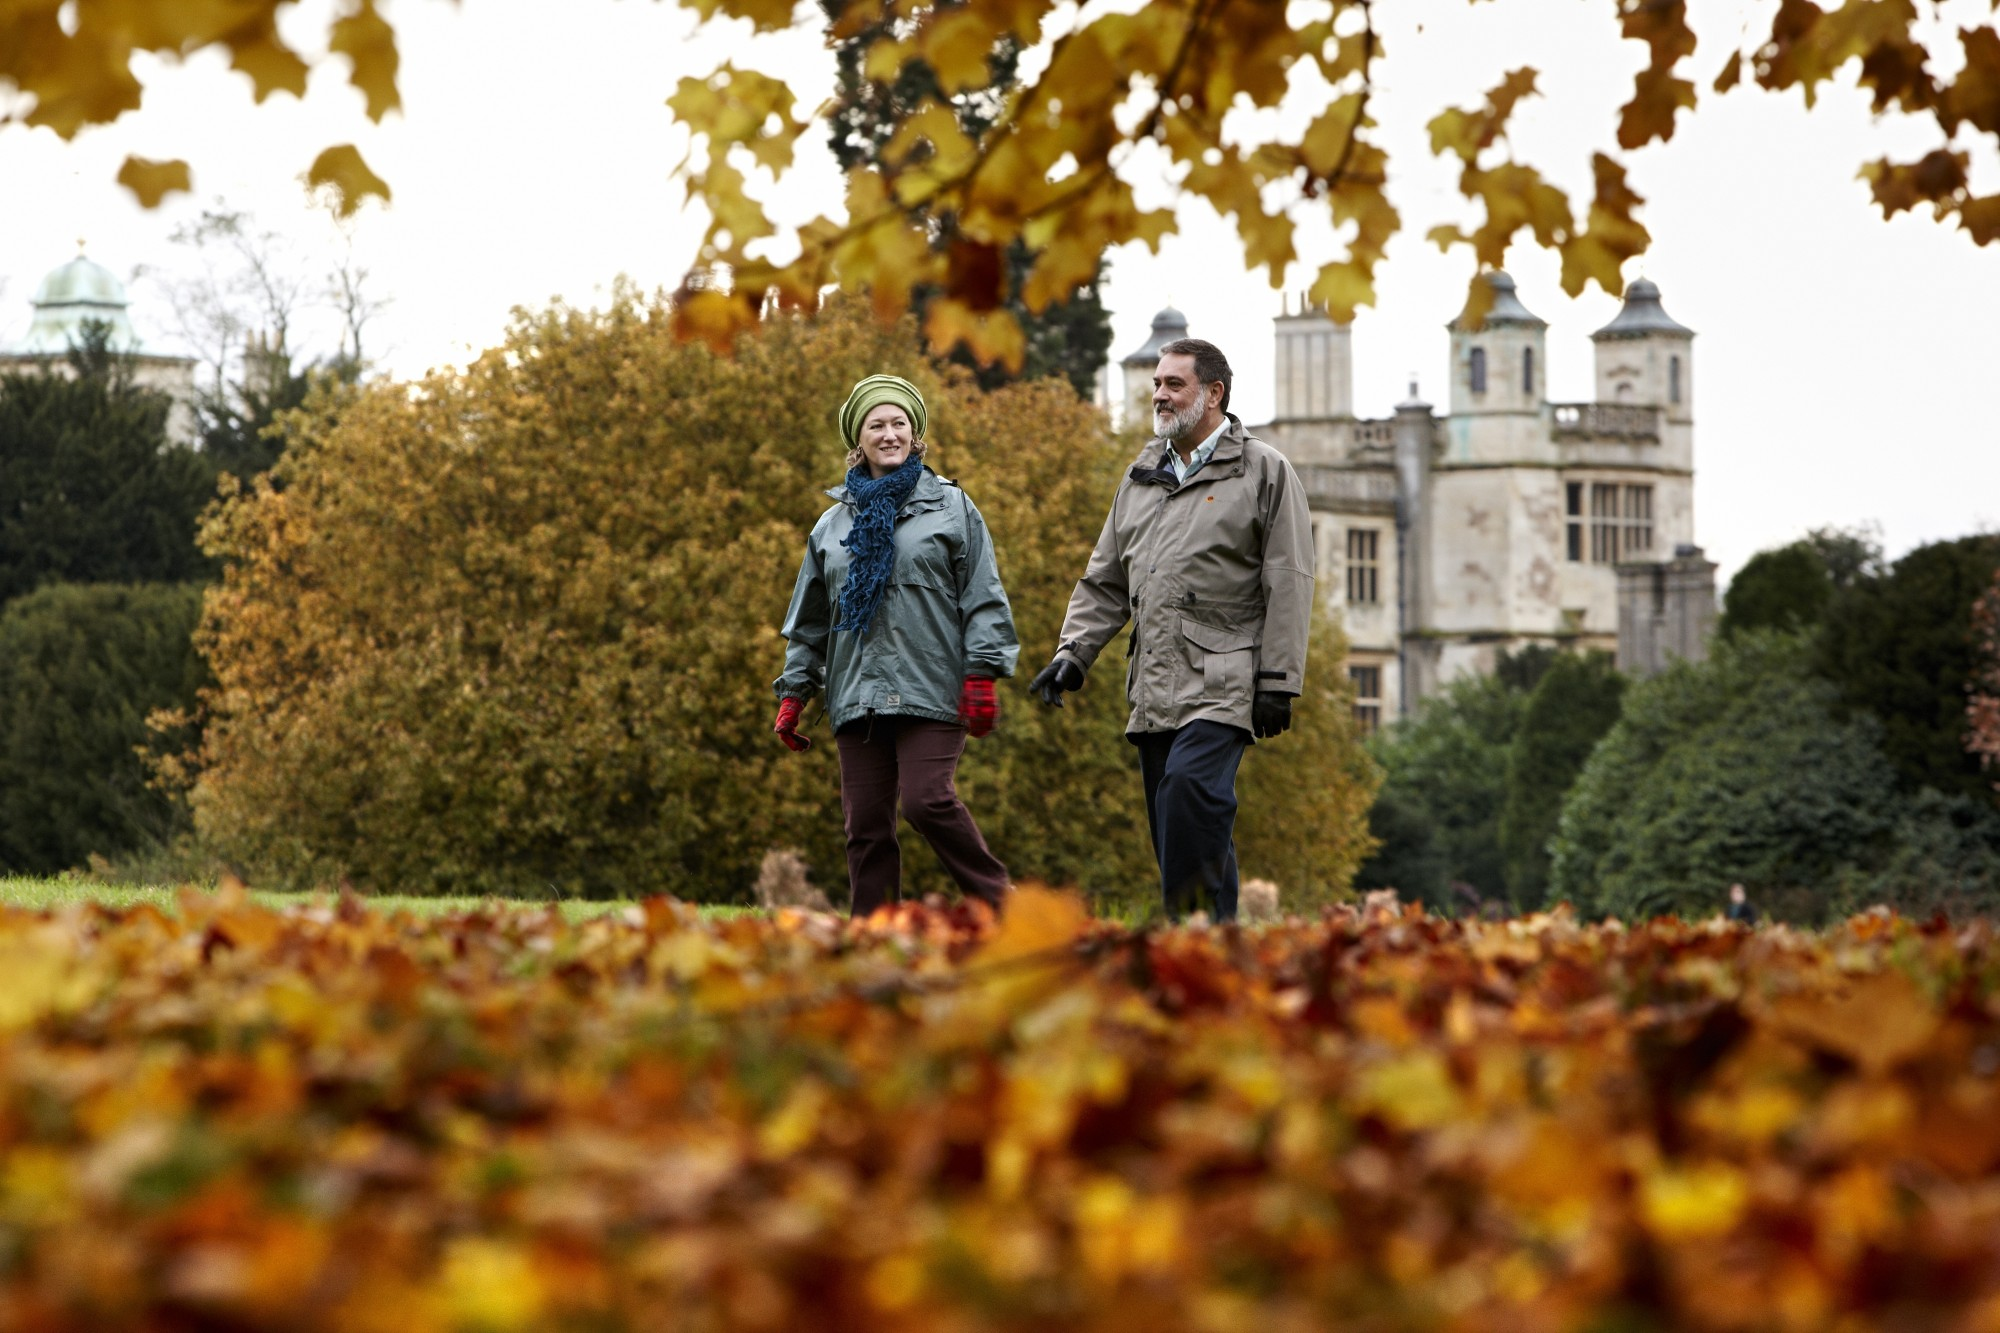 Two women walking across autumn leaves at an english heritage site